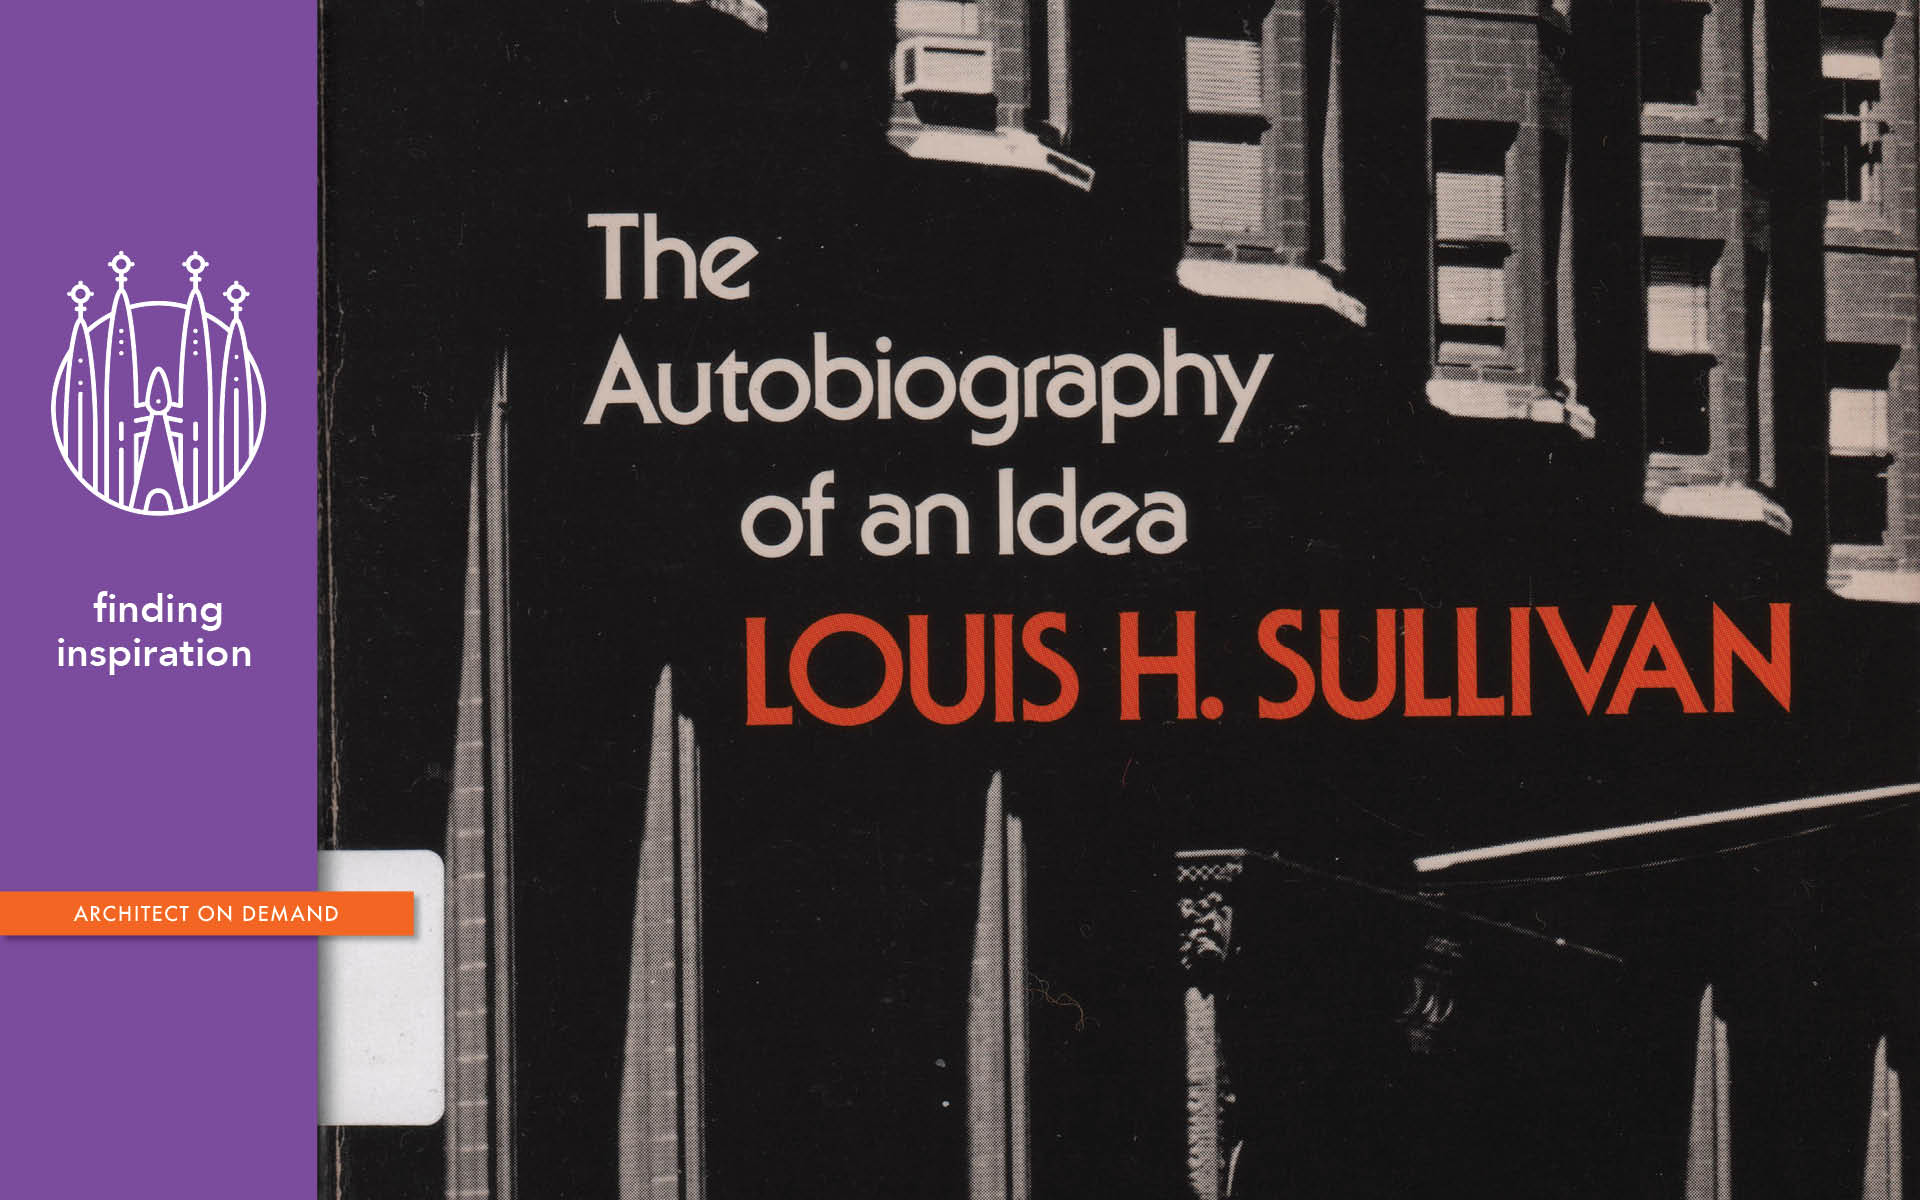 books, architecture, Louis Sullivan, architect on demand, advice without strings